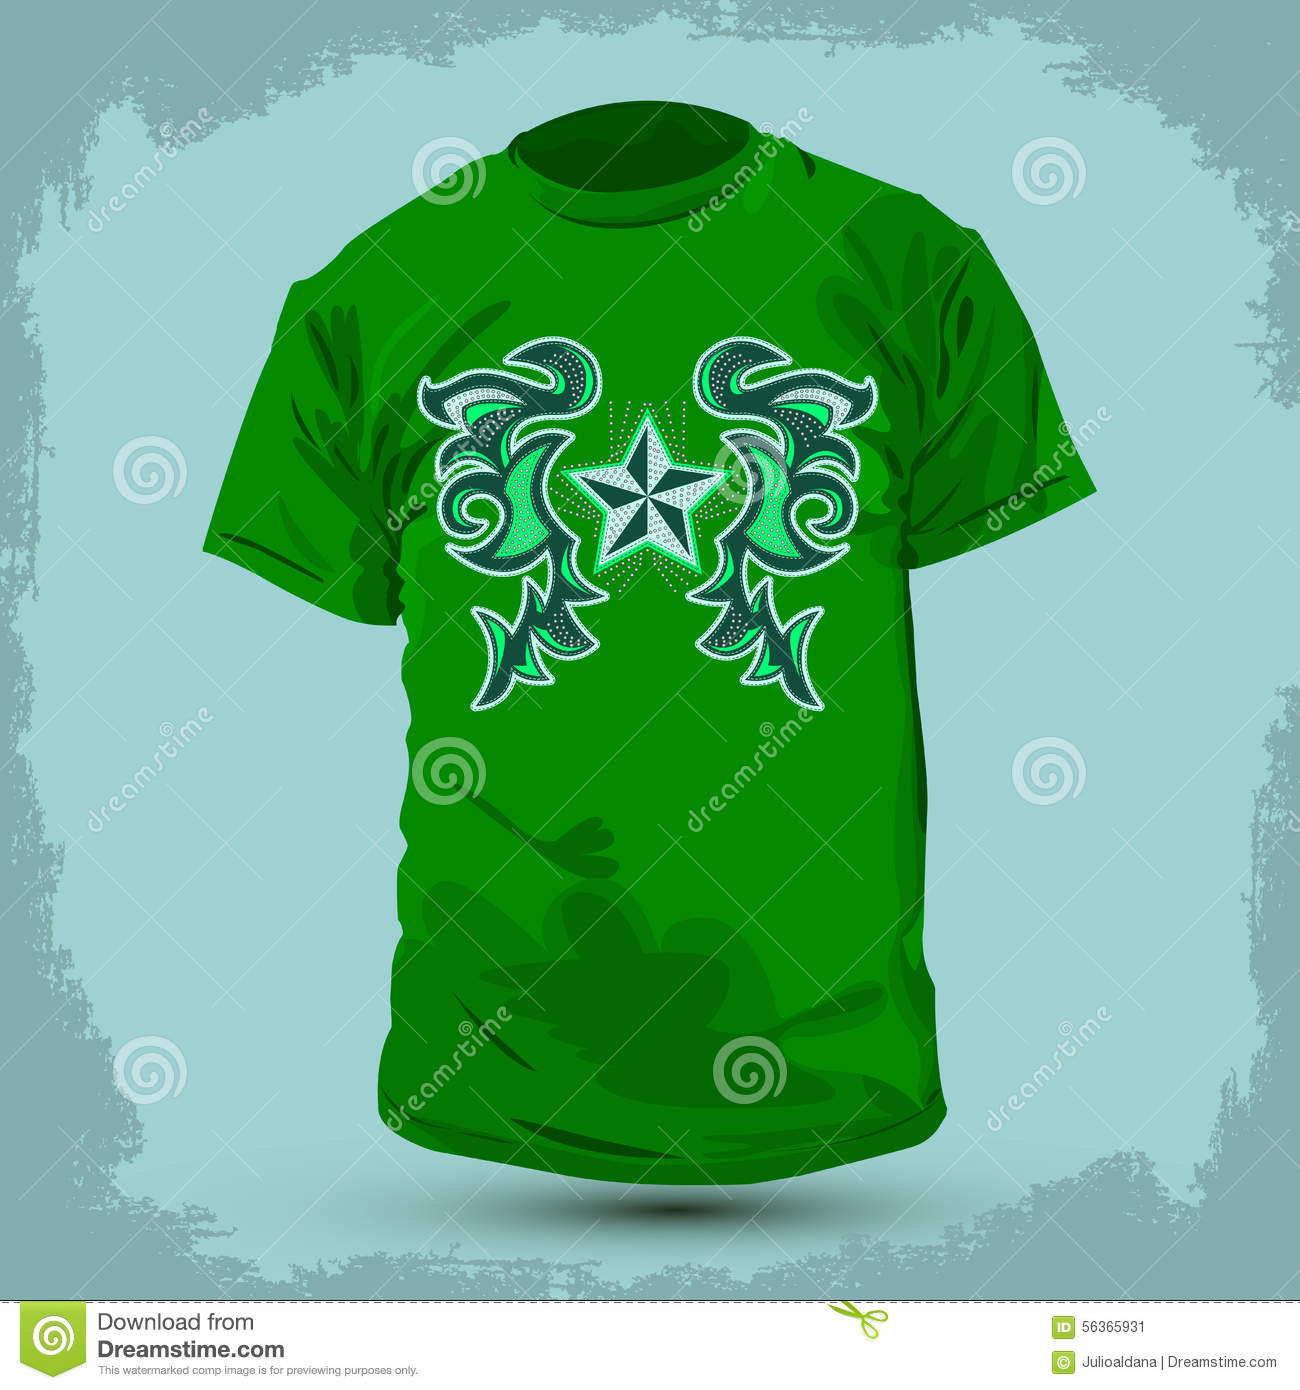 Graphic t shirt design rockstar abstract design stock for Stock t shirt designs